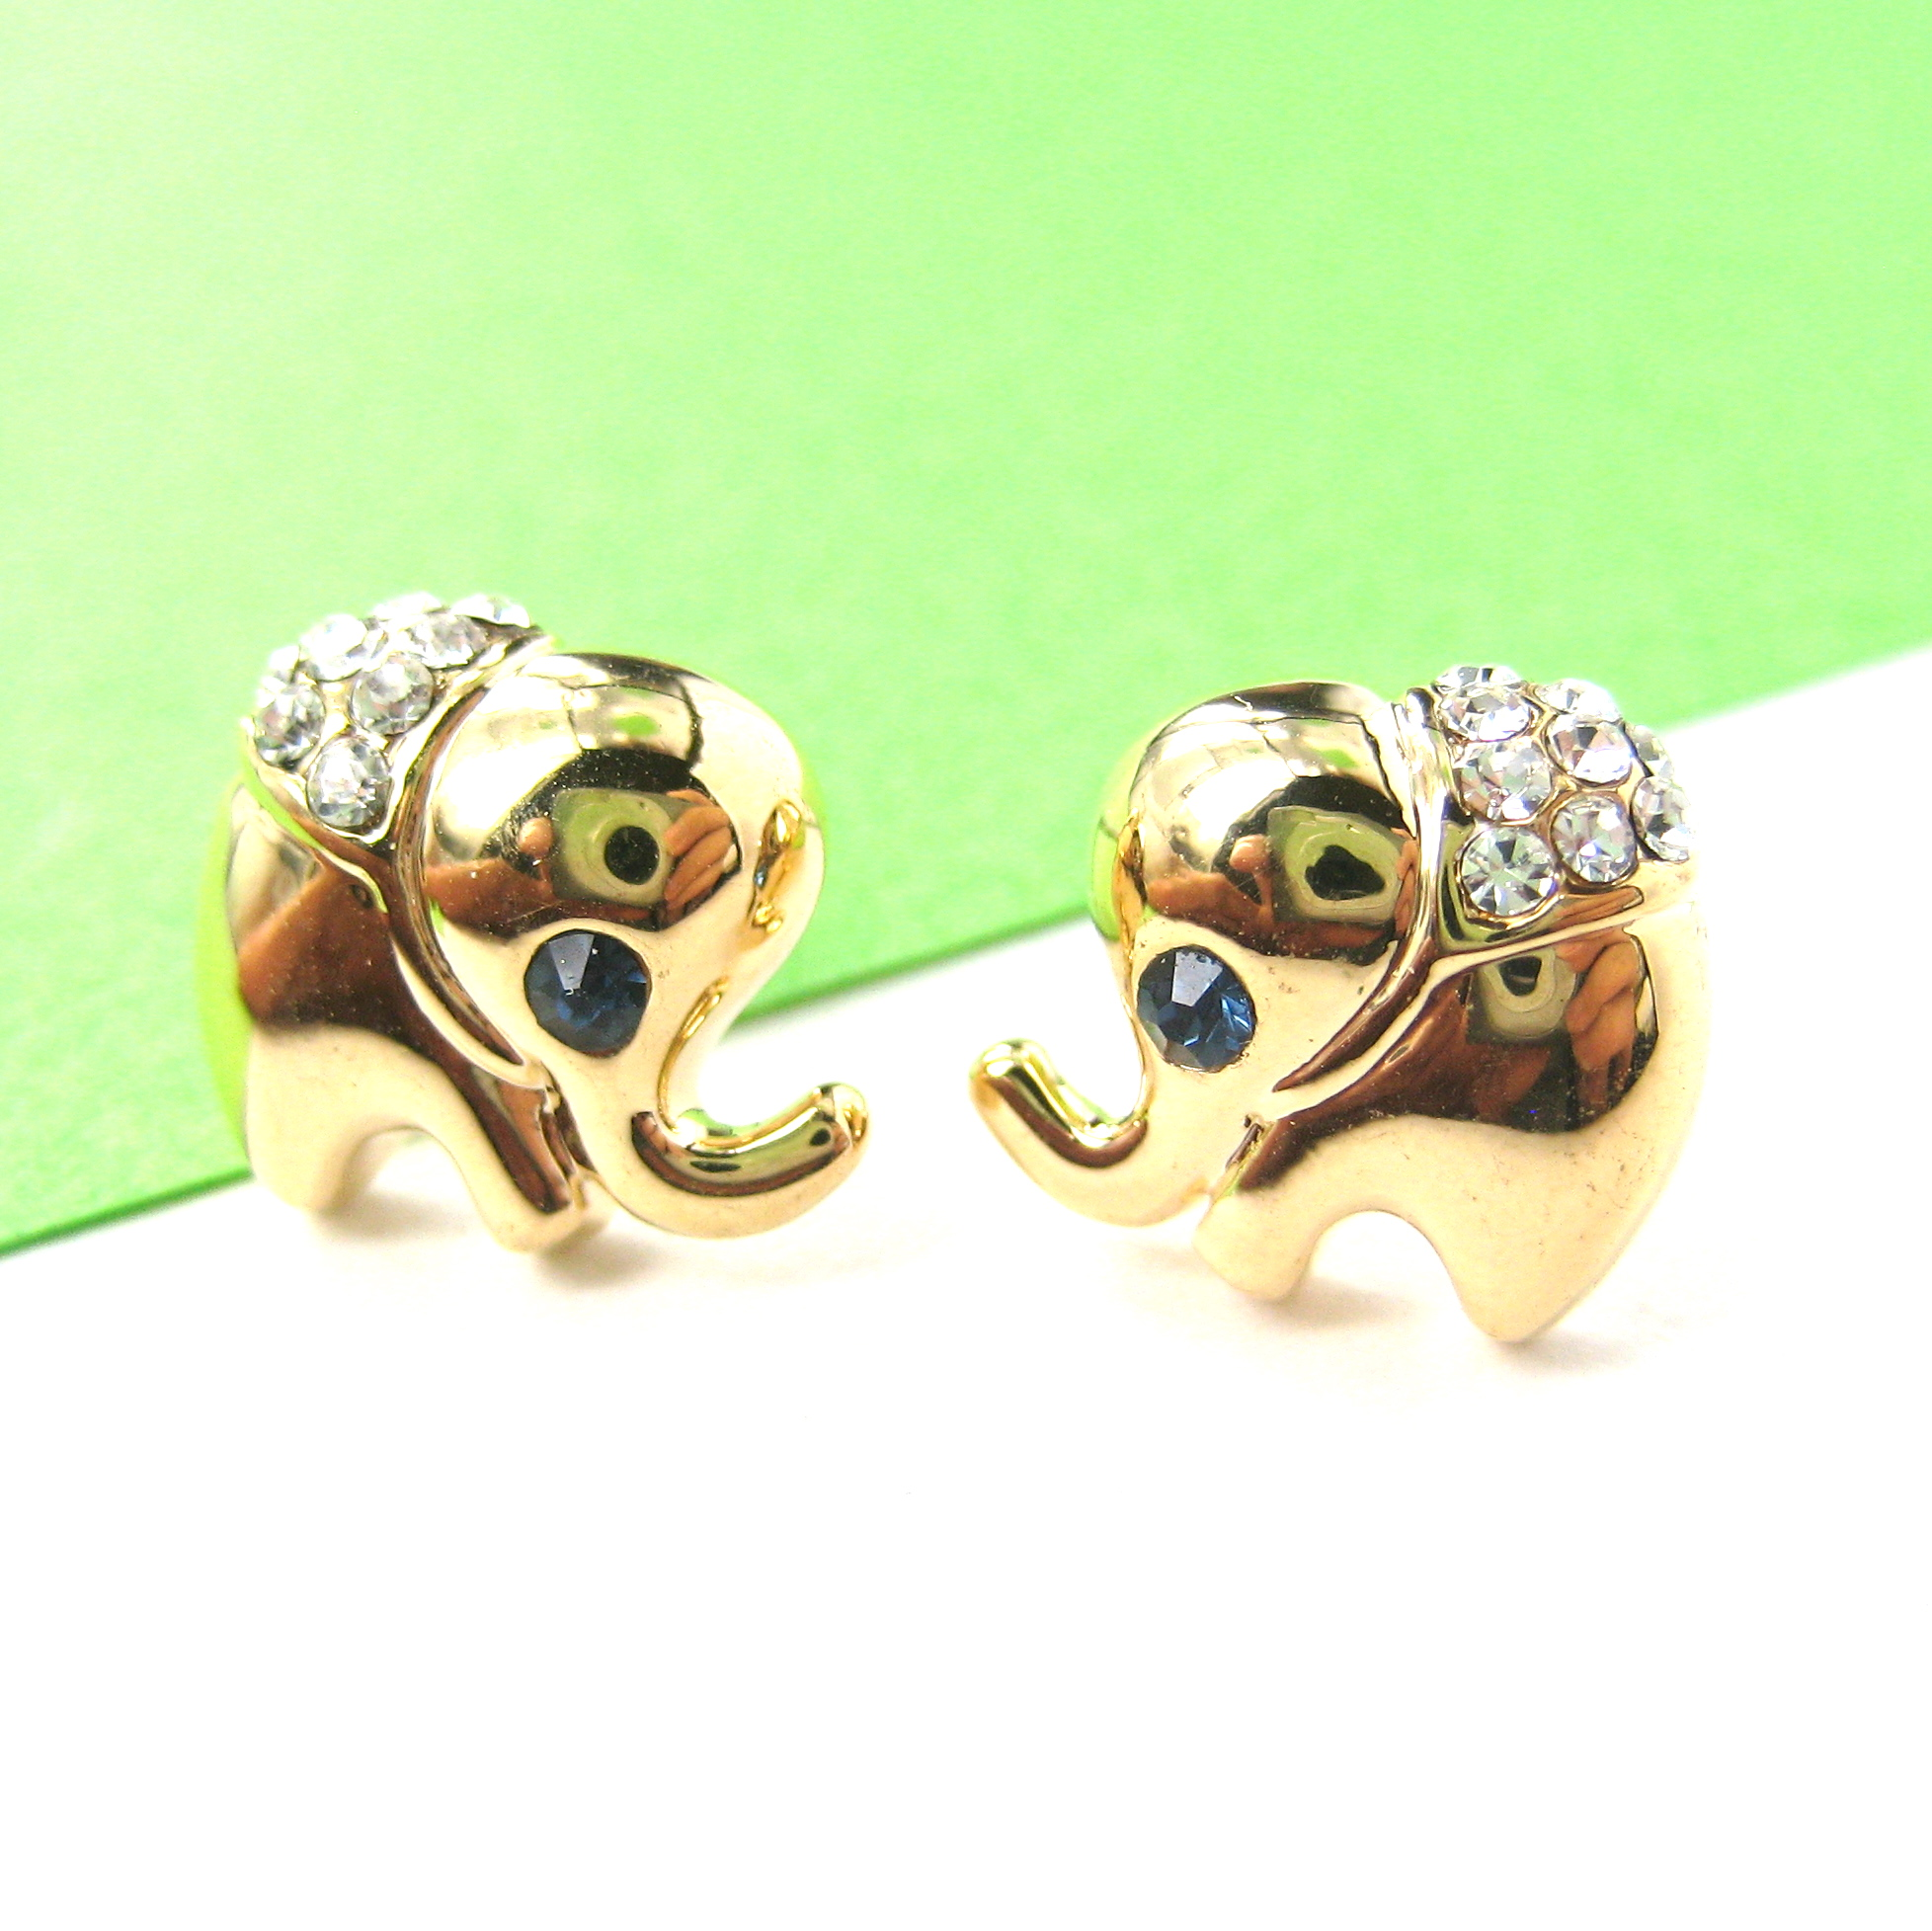 Cute and Small Elephant Animal Stud Earrings in Gold with ...